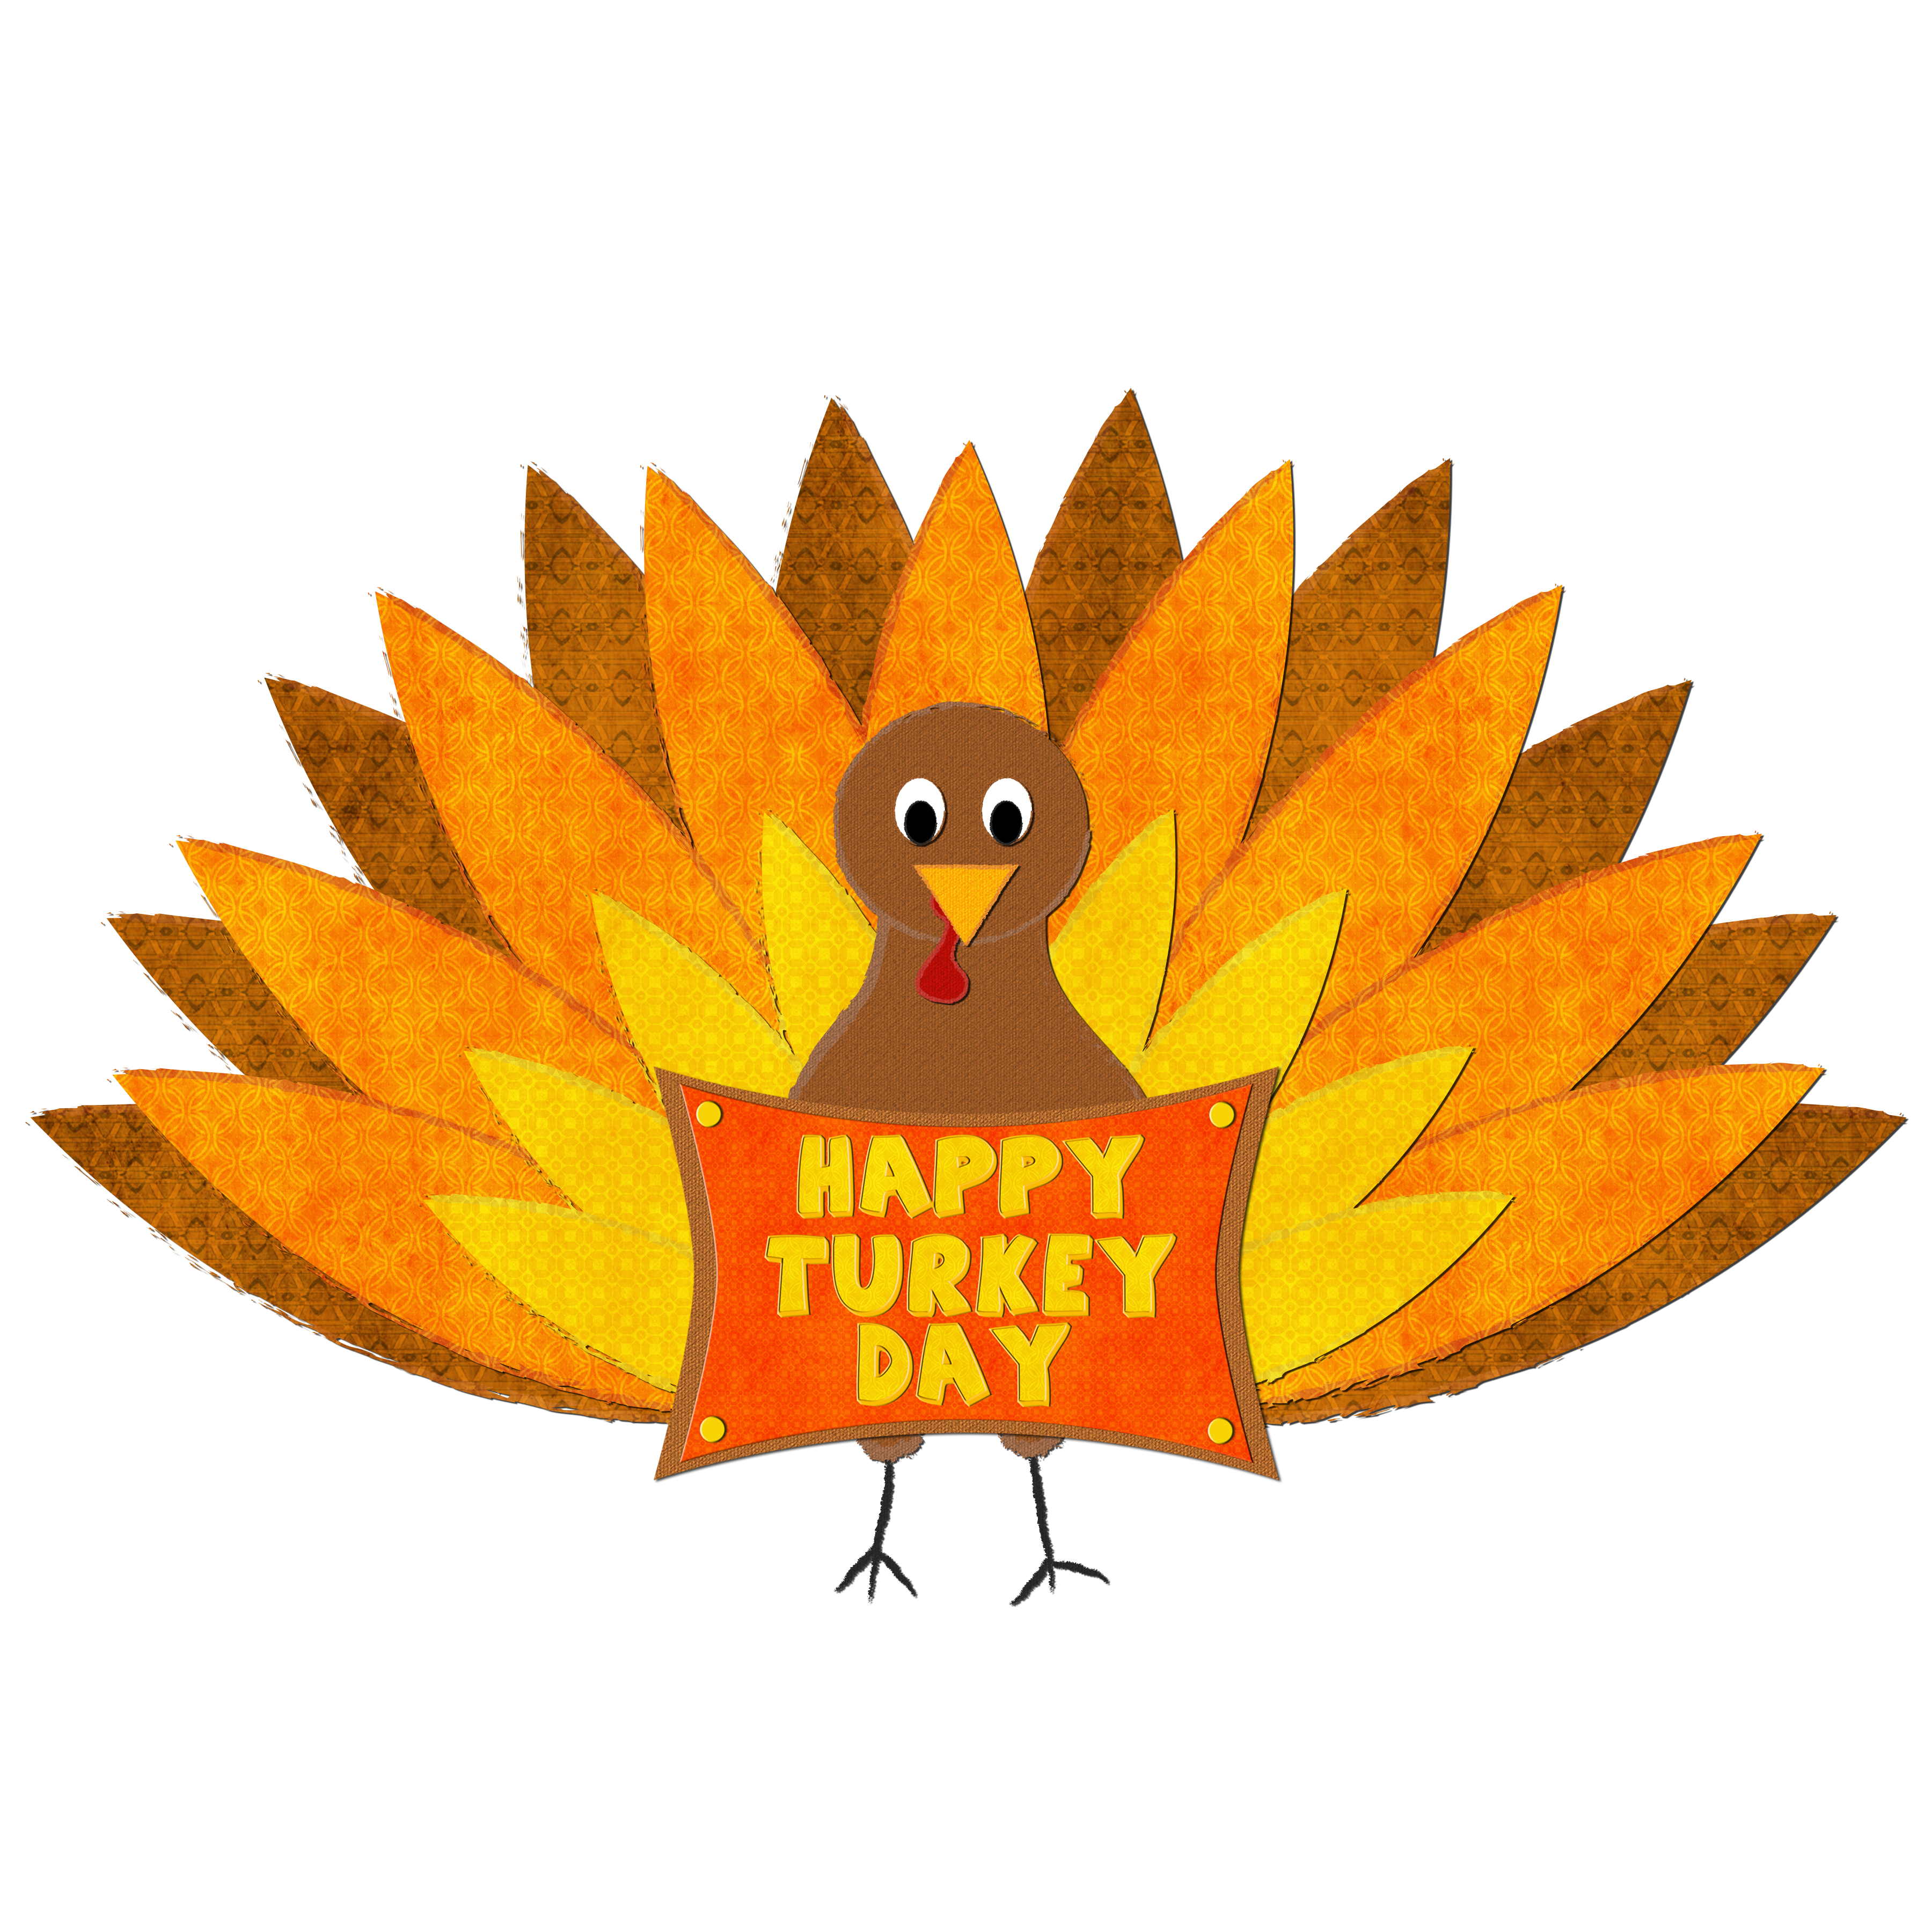 Turkey day bumblebee clipart banner free library 100+ Thanksgiving 2017 Pictures: Happy, Funny, Facebook And Color ... banner free library